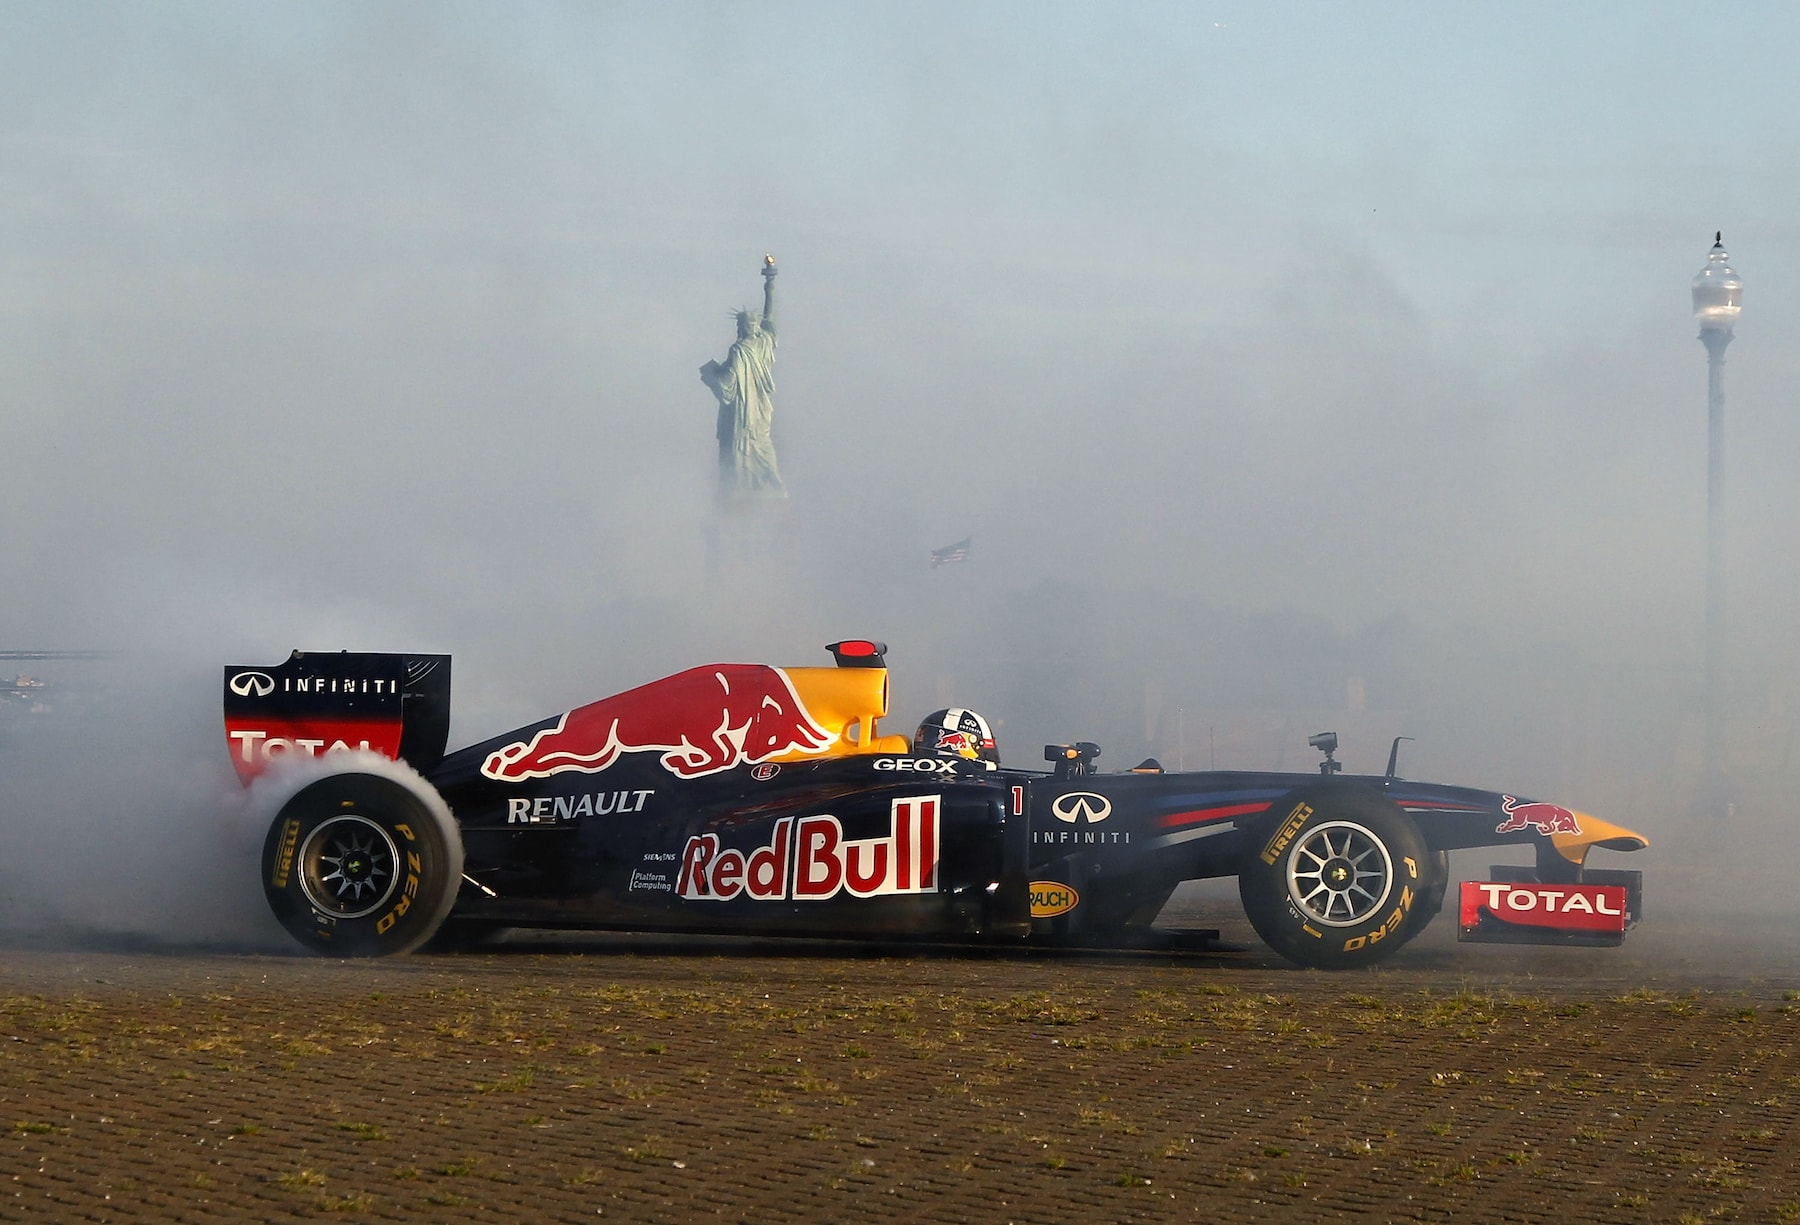 The RB7 and the Statue of Liberty